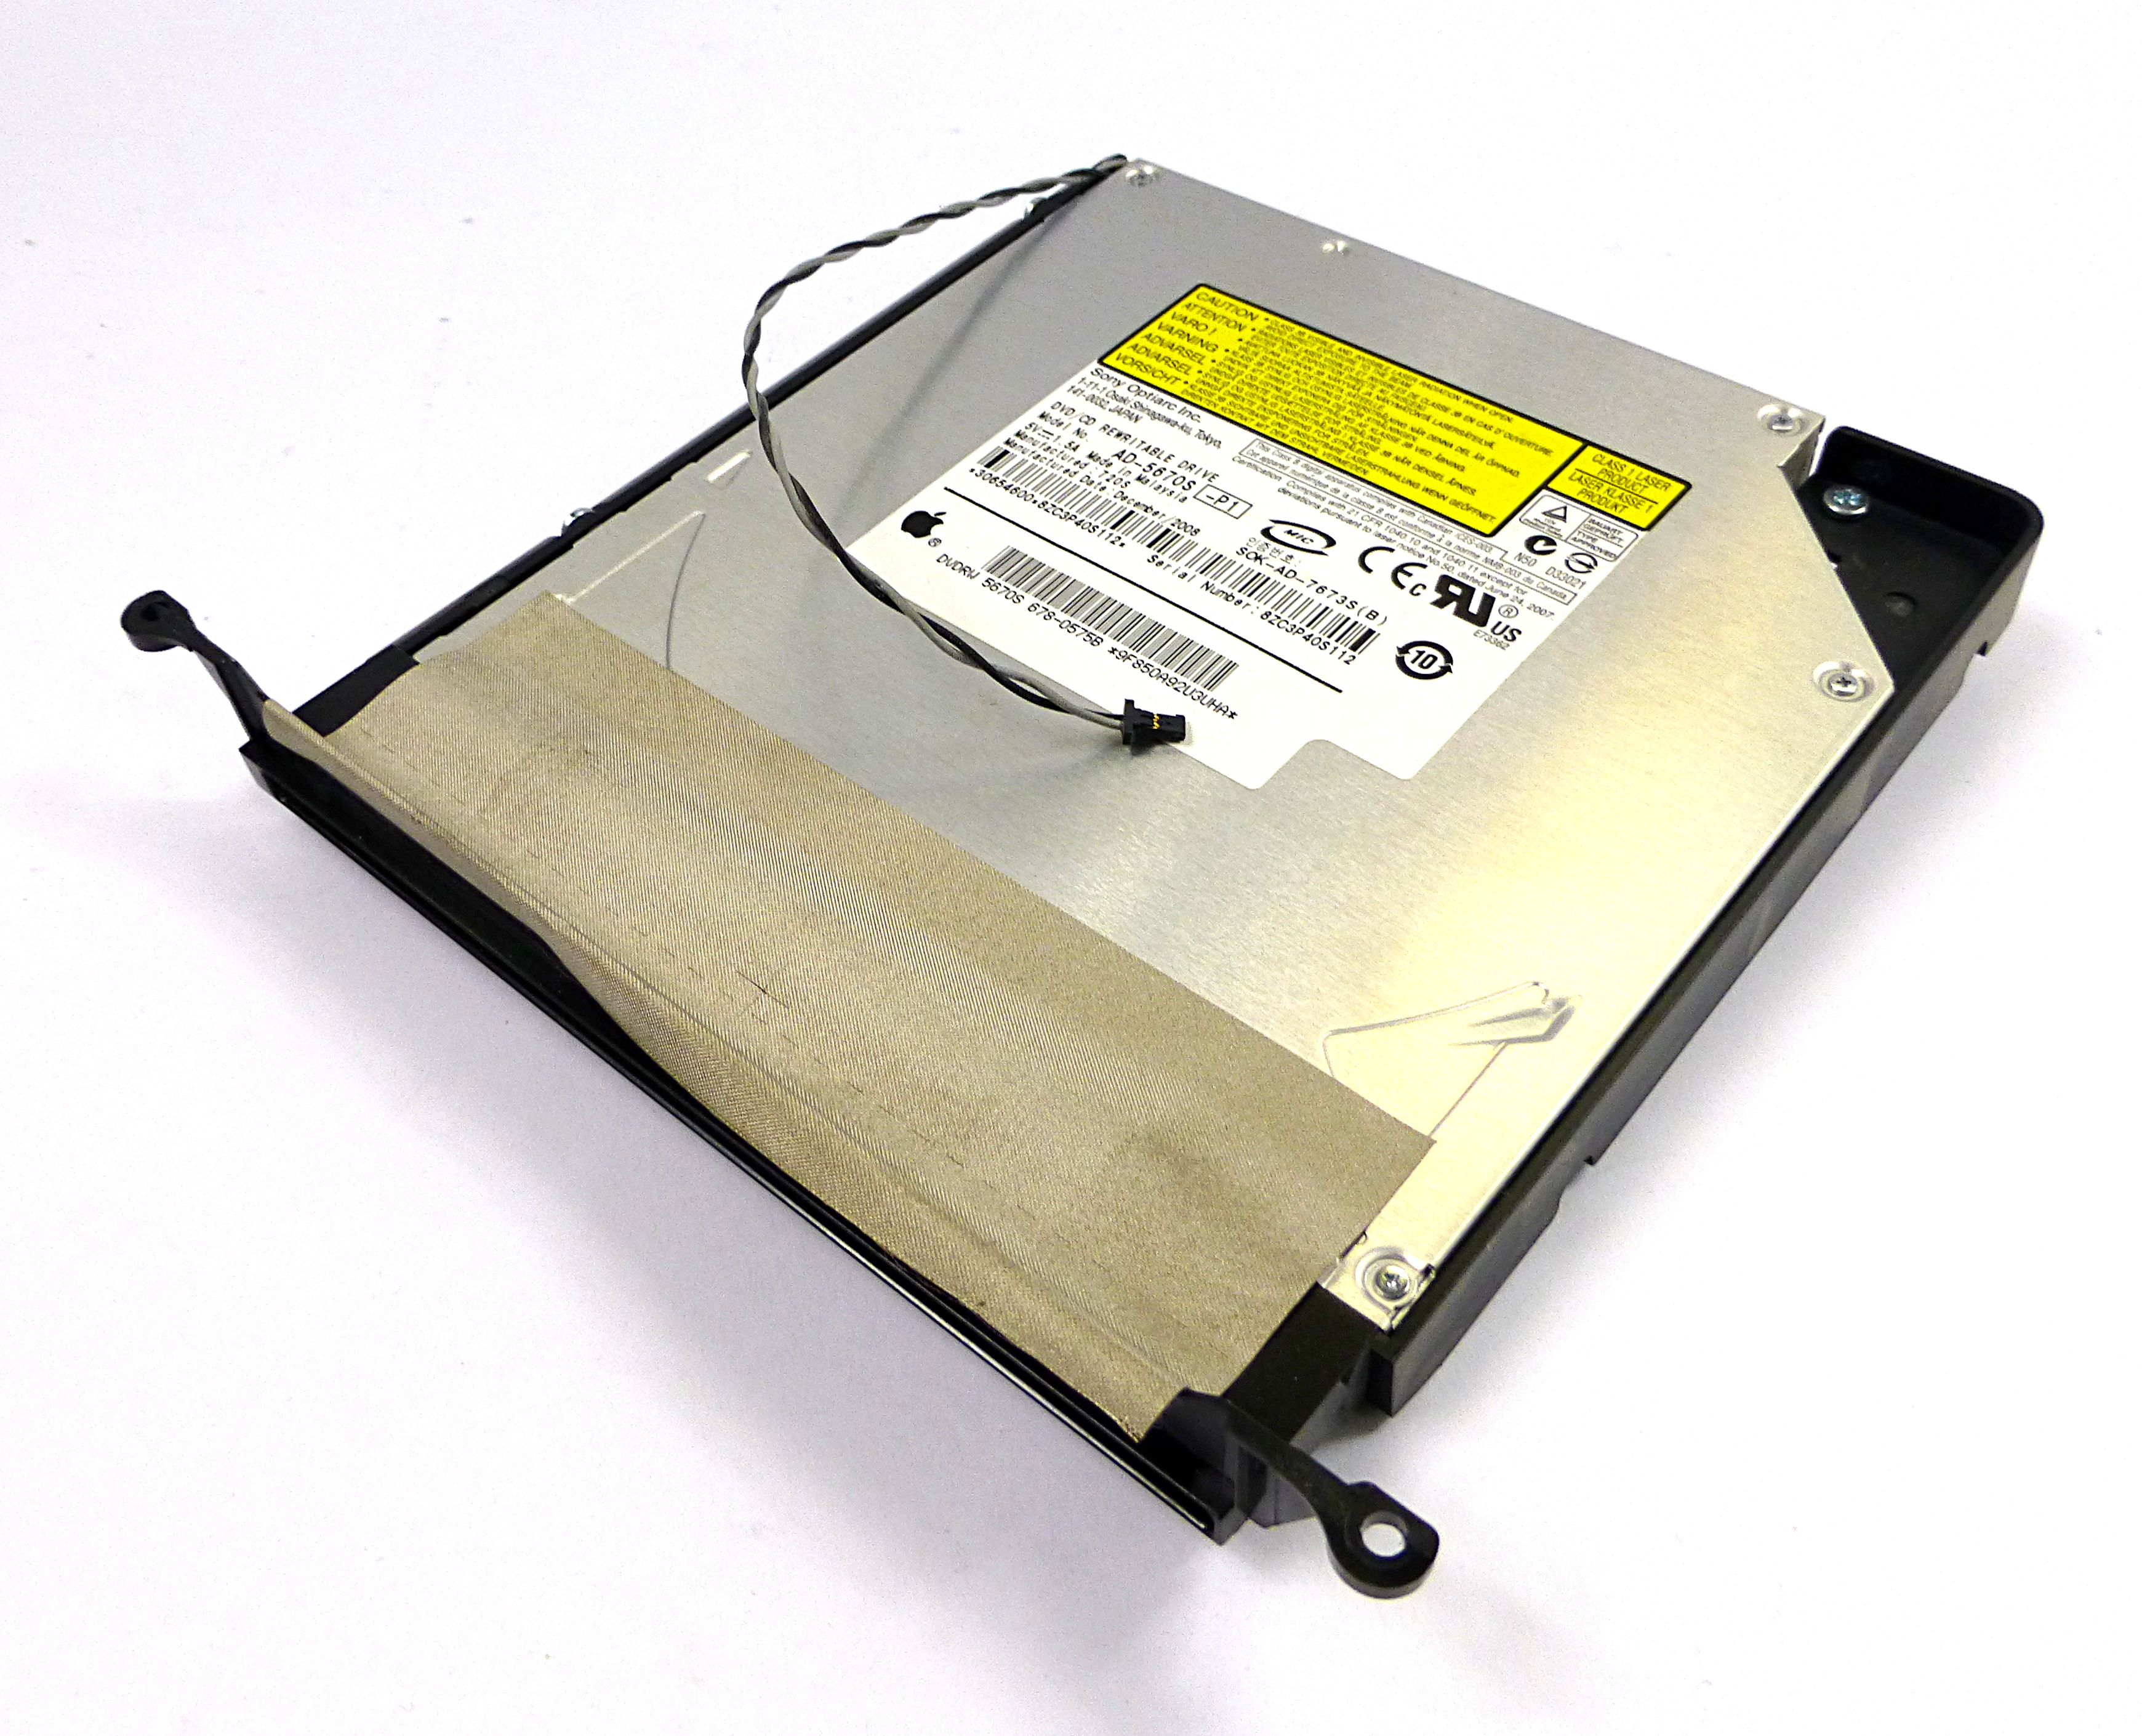 Apple 678-0575B AD-5670S-P1 SATA DVD/CD Rewritable Slot-Loading Optical Drive